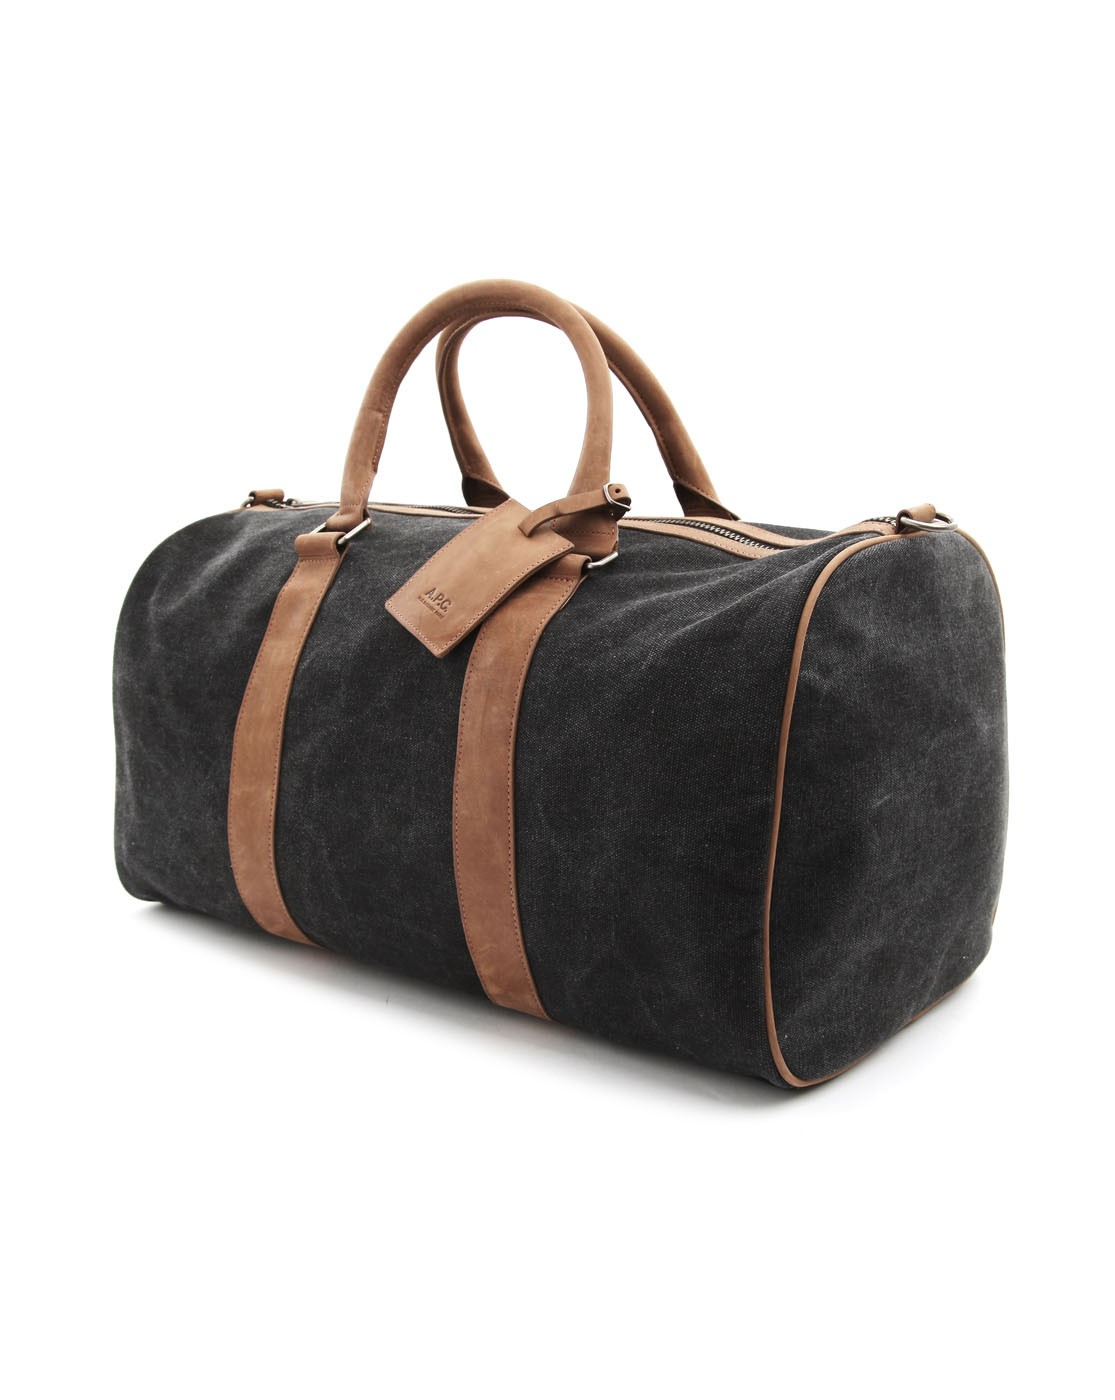 sac de voyage homme j 39 alterne avec deux sacs. Black Bedroom Furniture Sets. Home Design Ideas